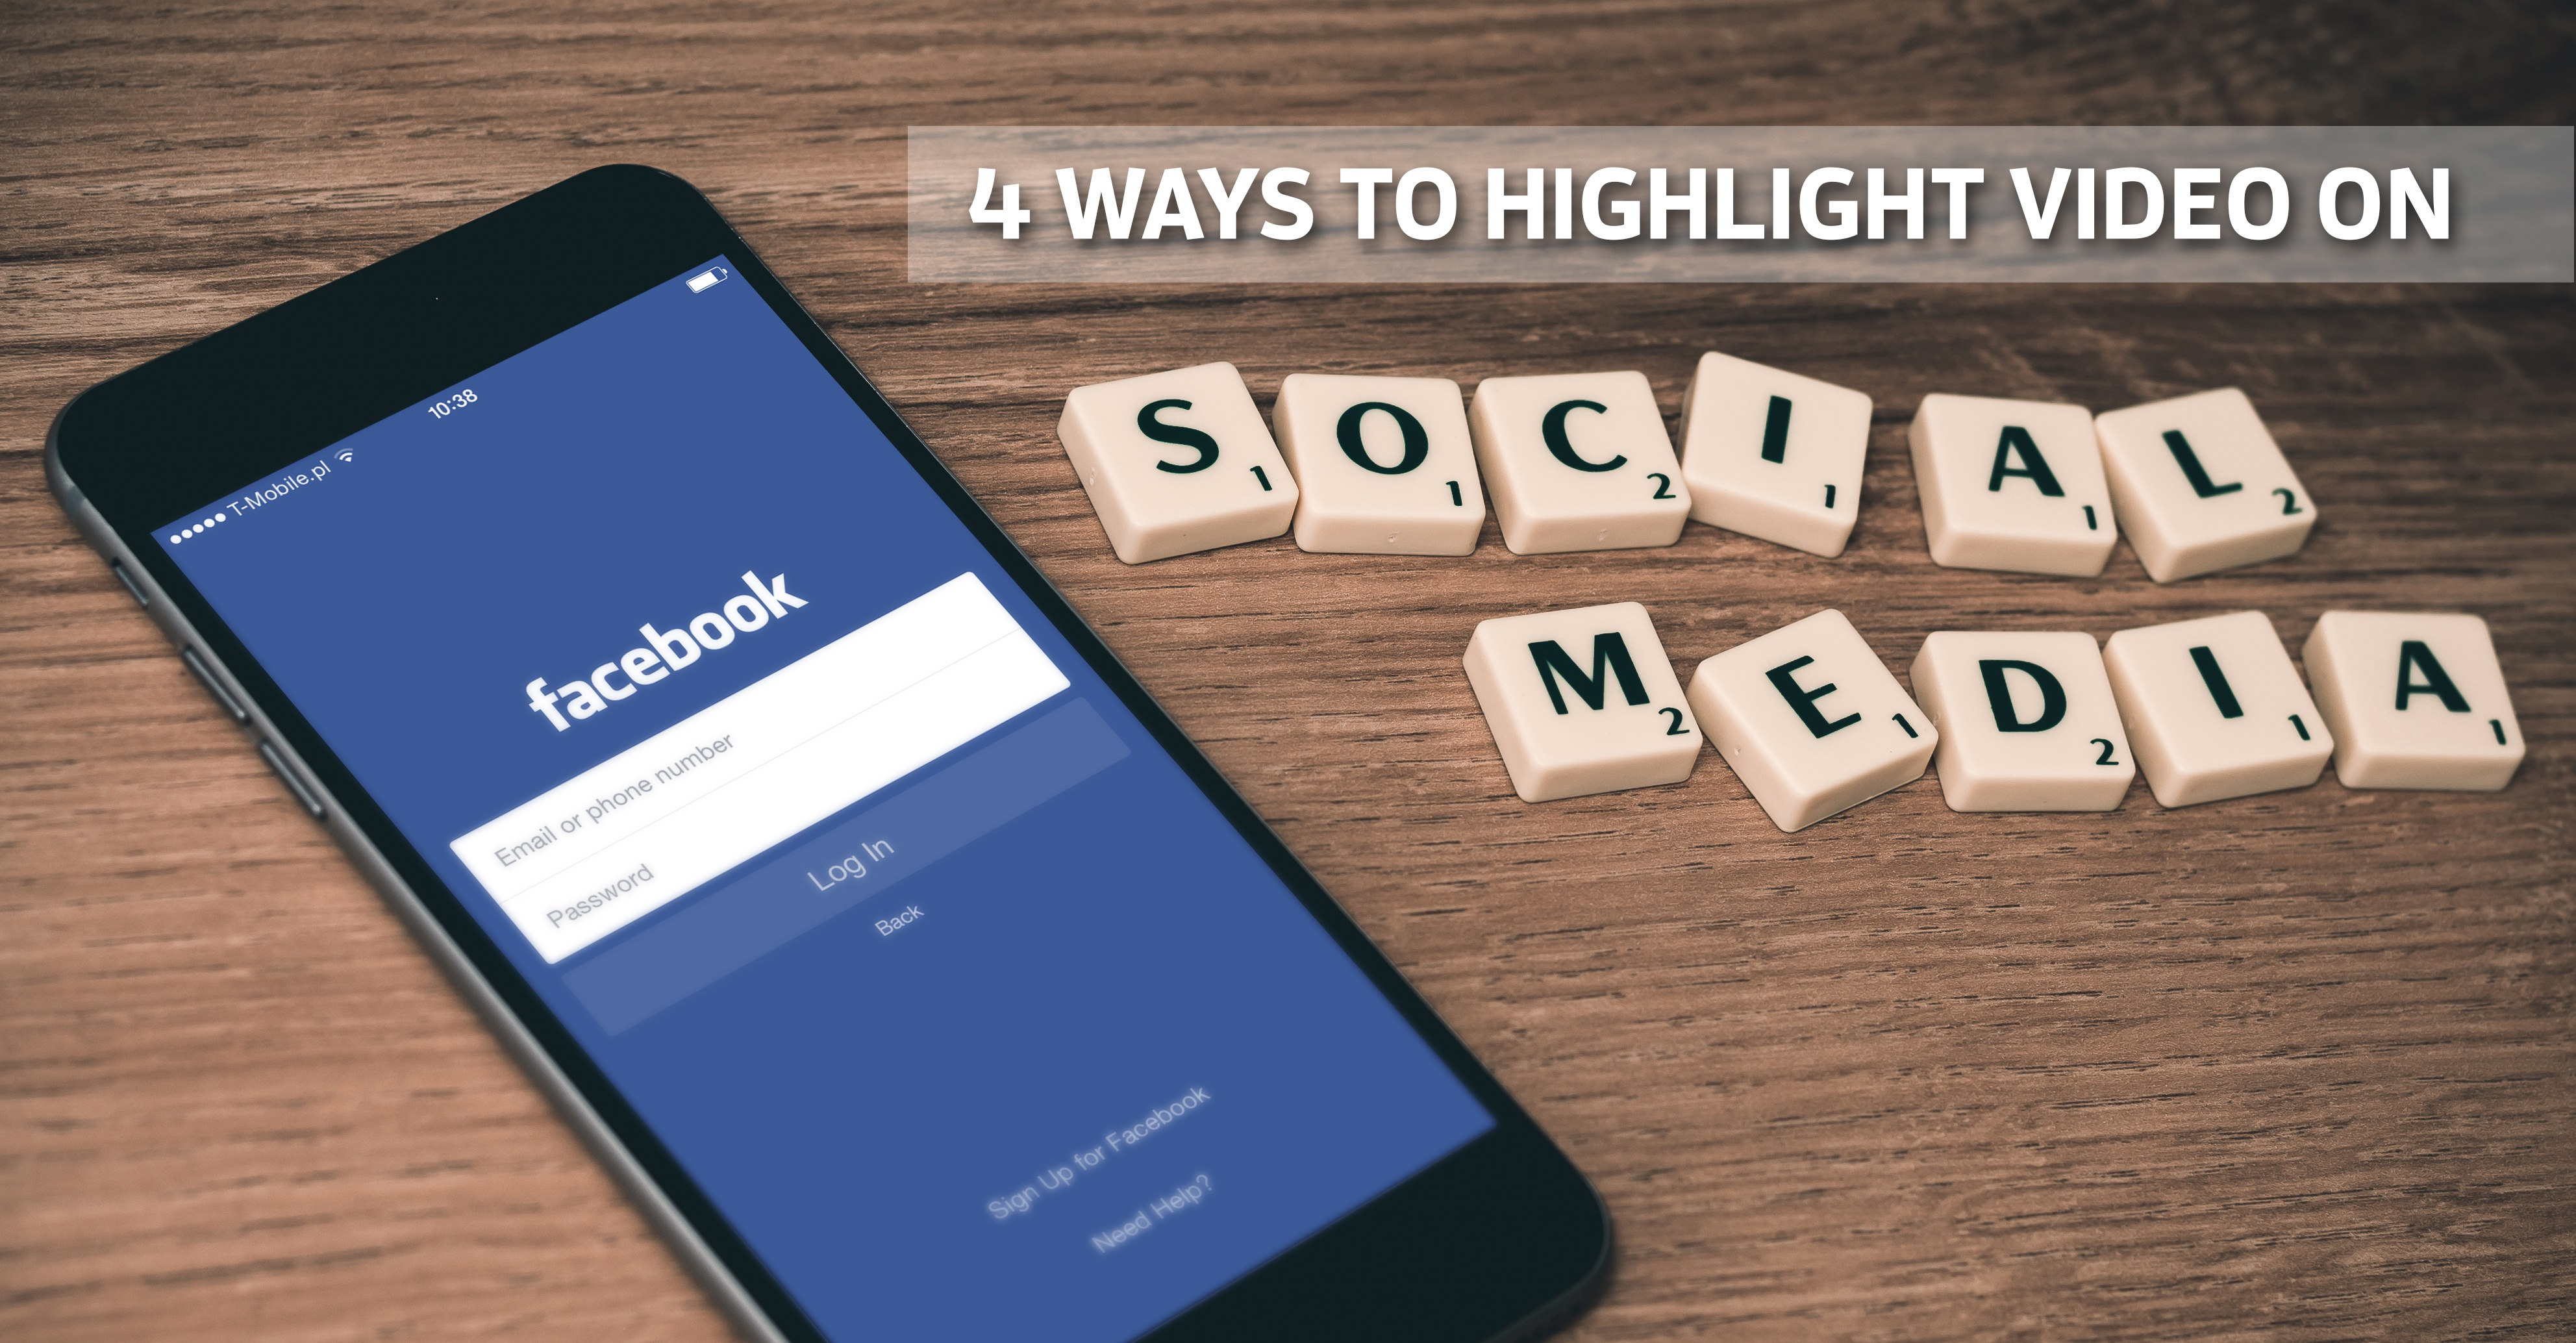 4 Often Overlooked Ways to Highlight Video on Social Media